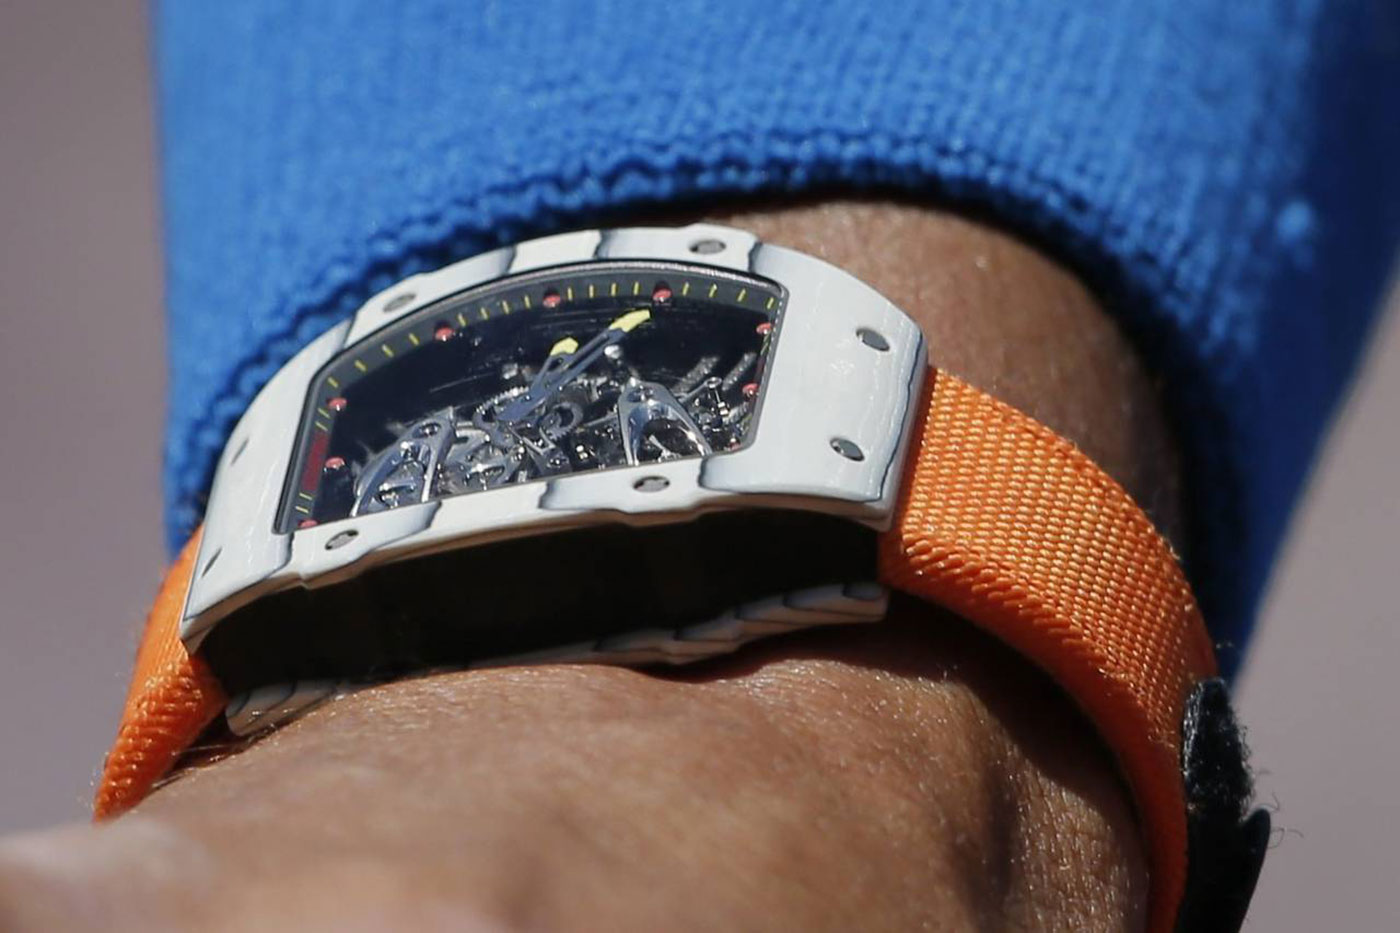 Richard Mille Tourbillon RM 27 02 Rafa Nadal watch orange strap